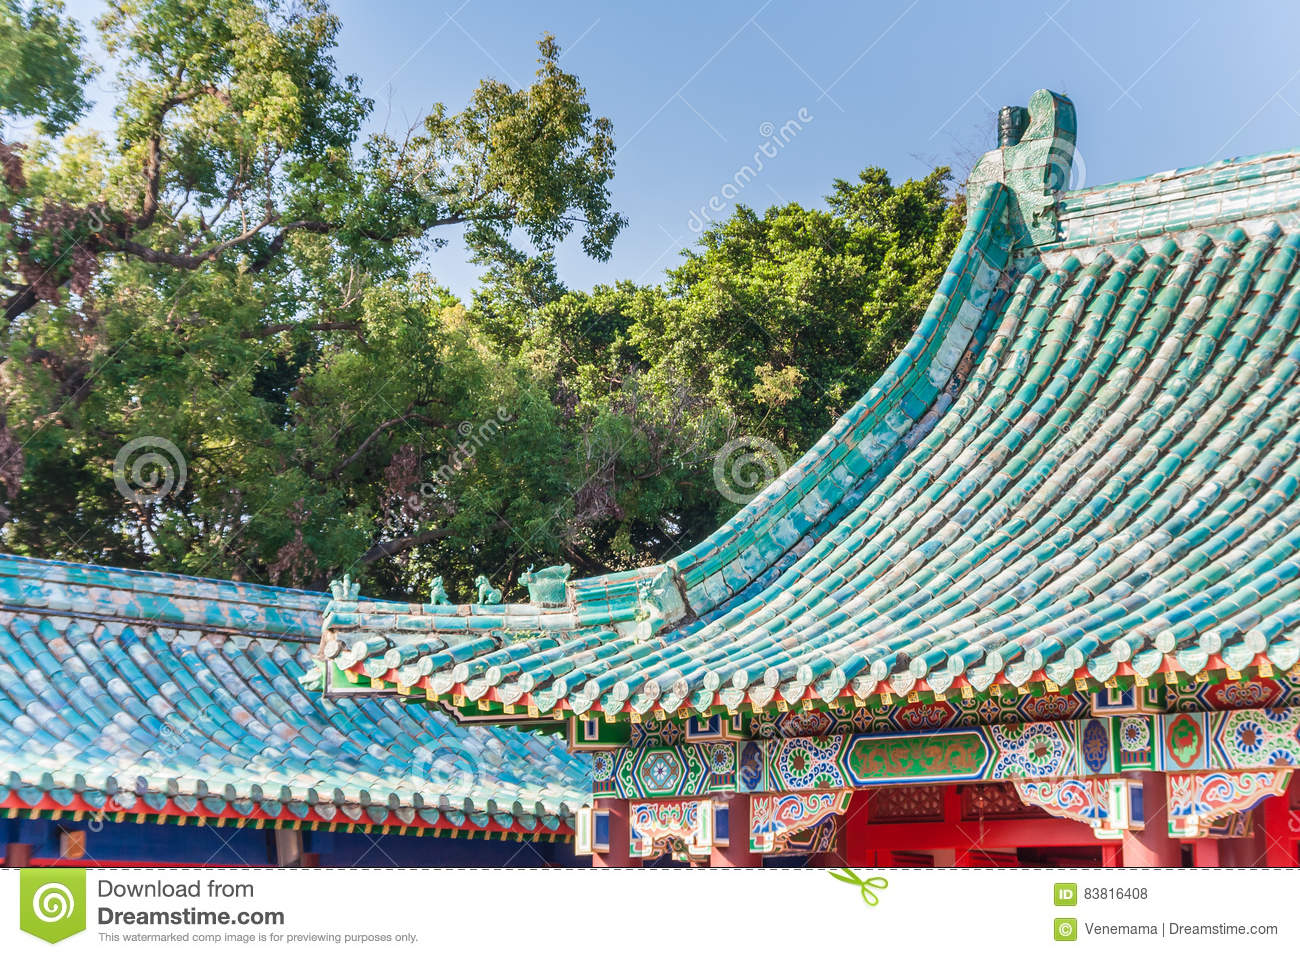 Colorful roof of the Koxinga Shrine in Tainan